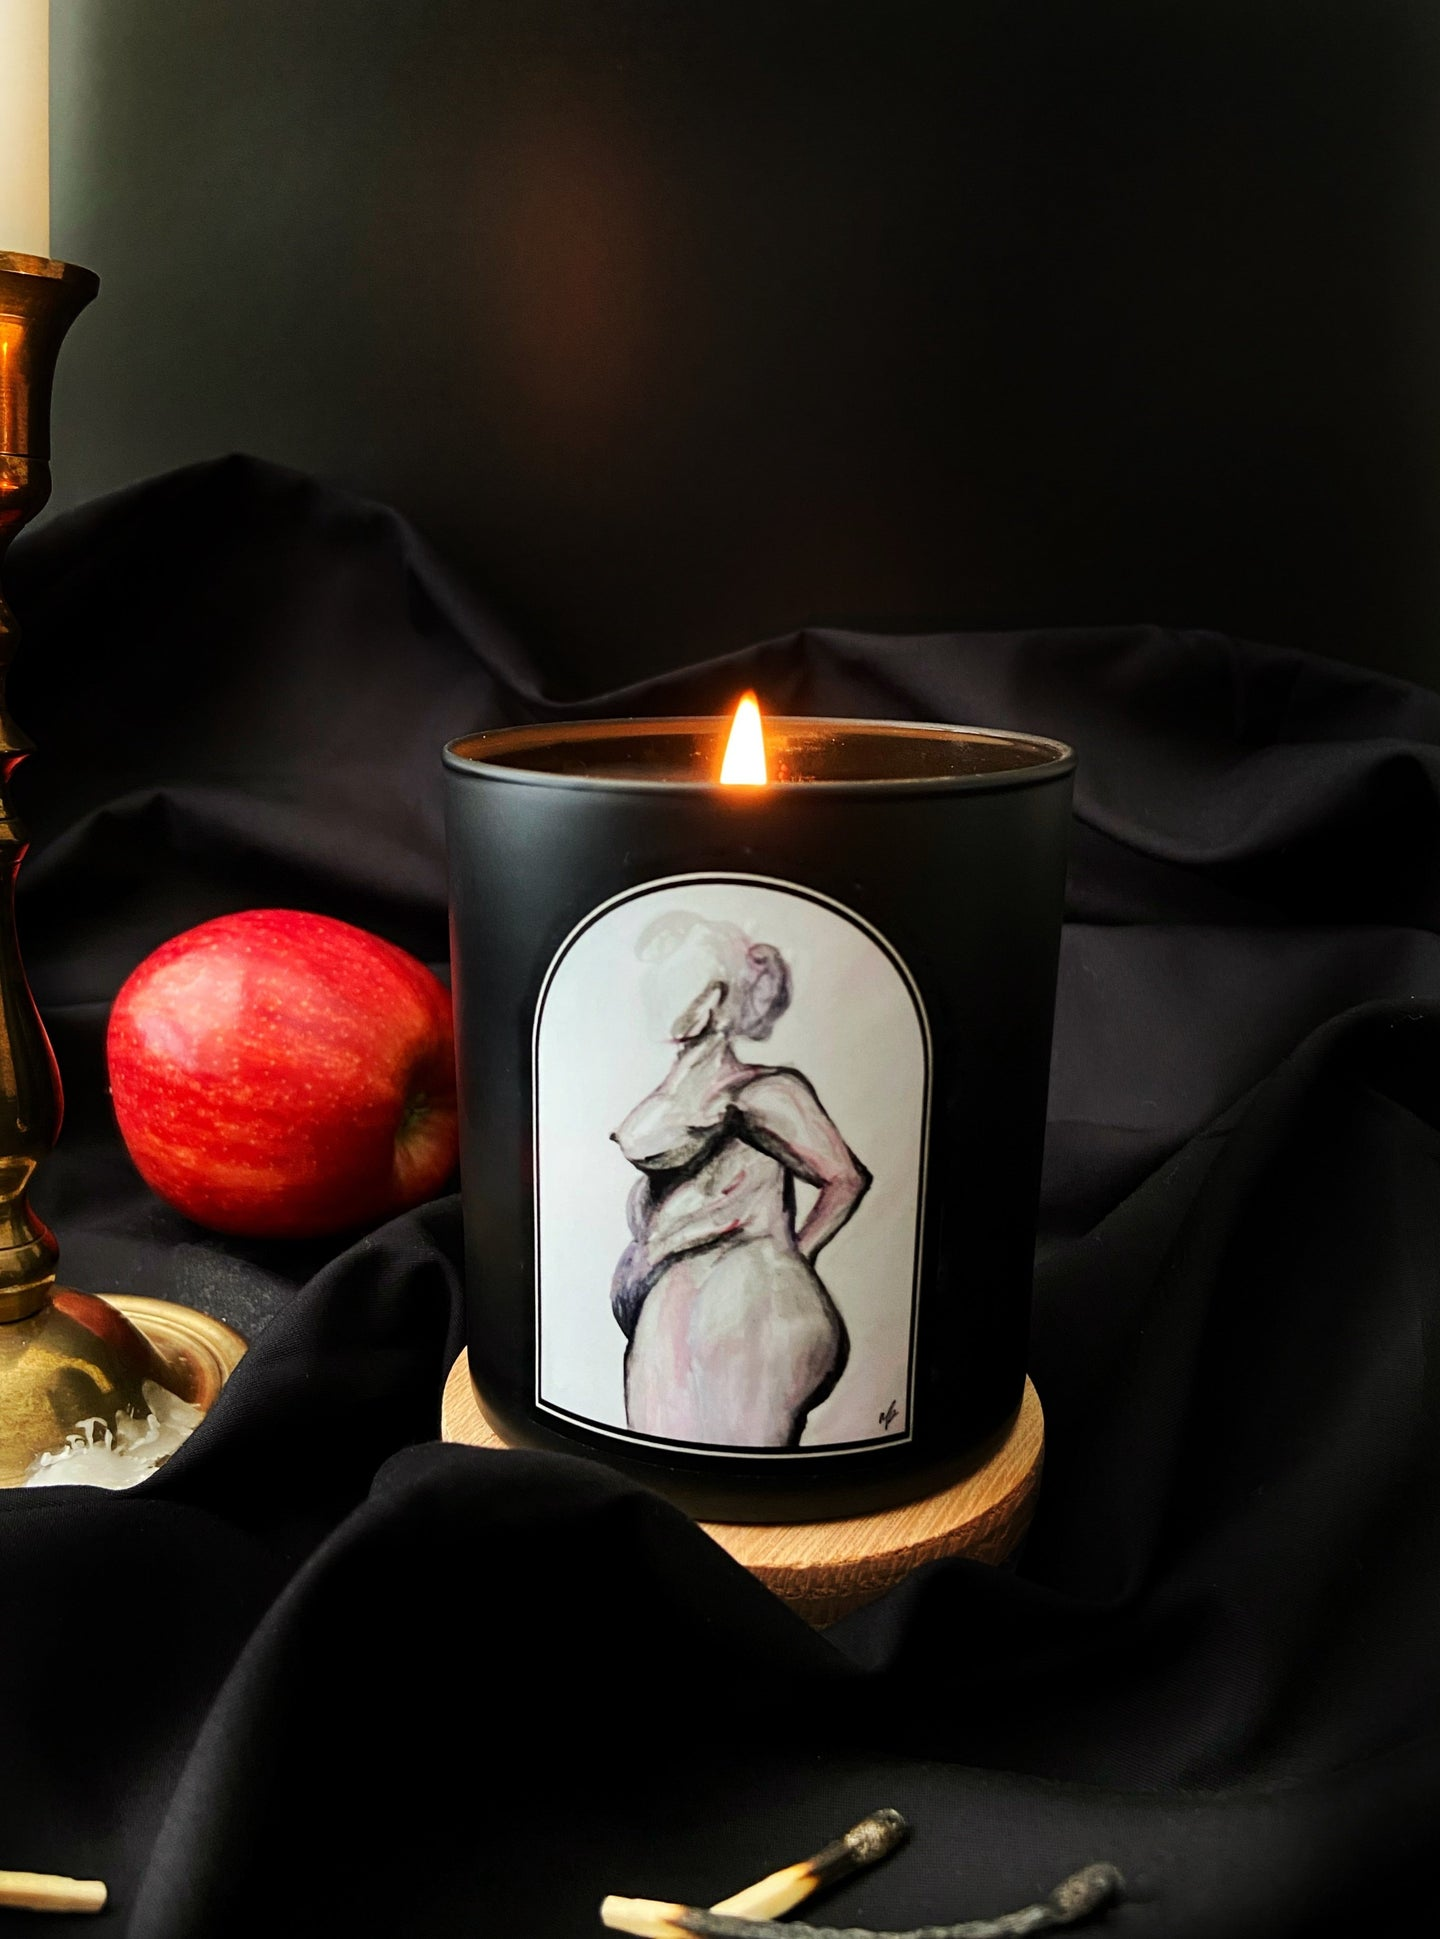 Apple Candle Soy candle in a black jar with apple notes figure study nude female figure water color painting art arch candle label nudesse candle nude female figure